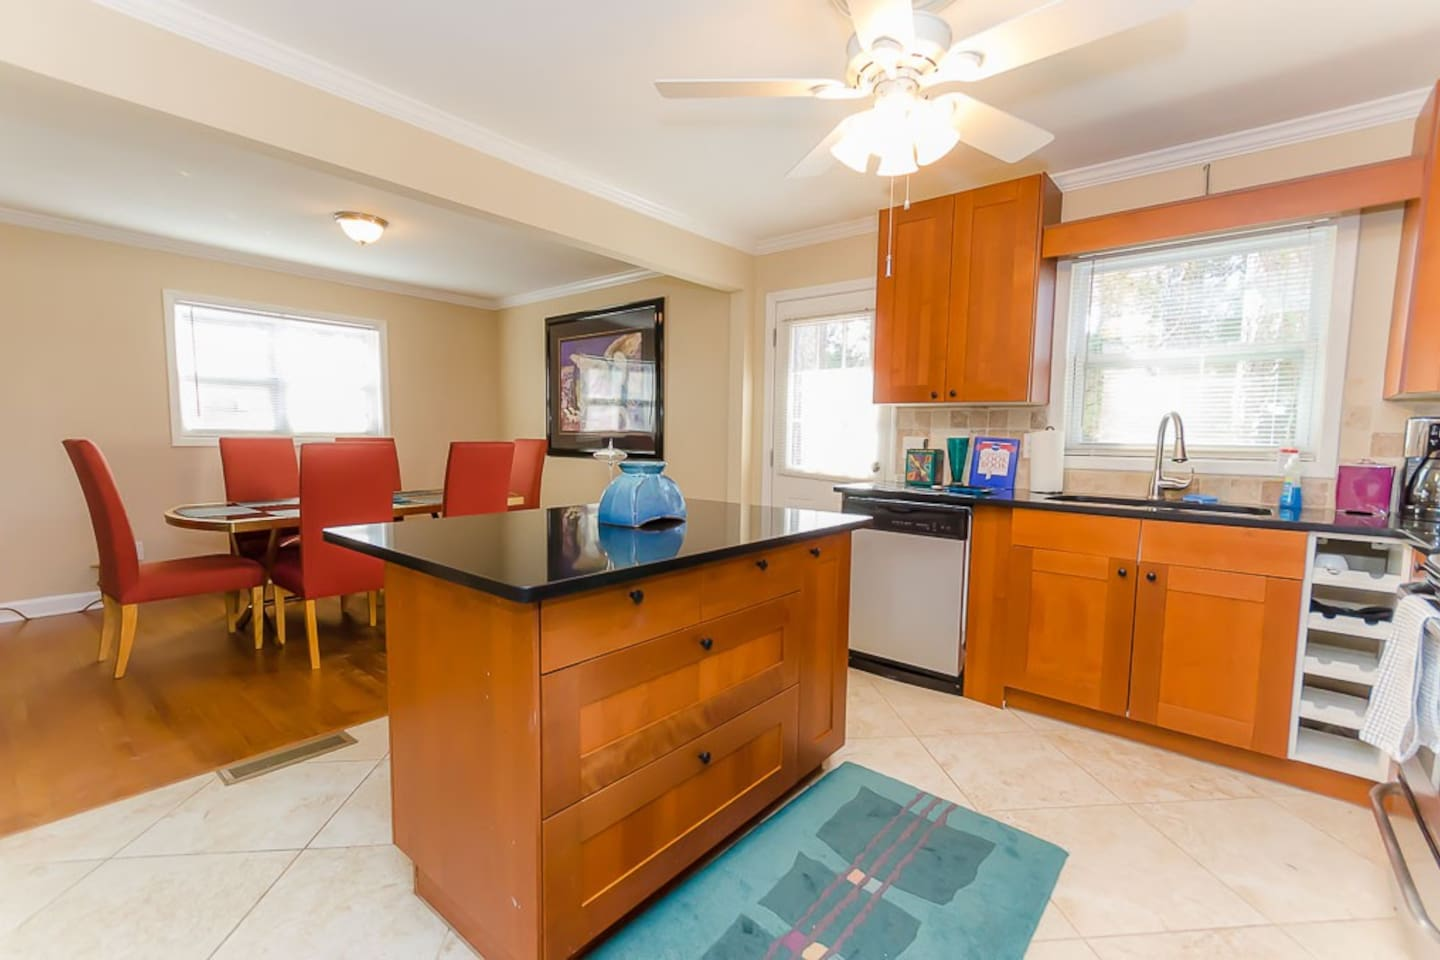 Fully Equipped Kitchen with a large Island, great for cooking